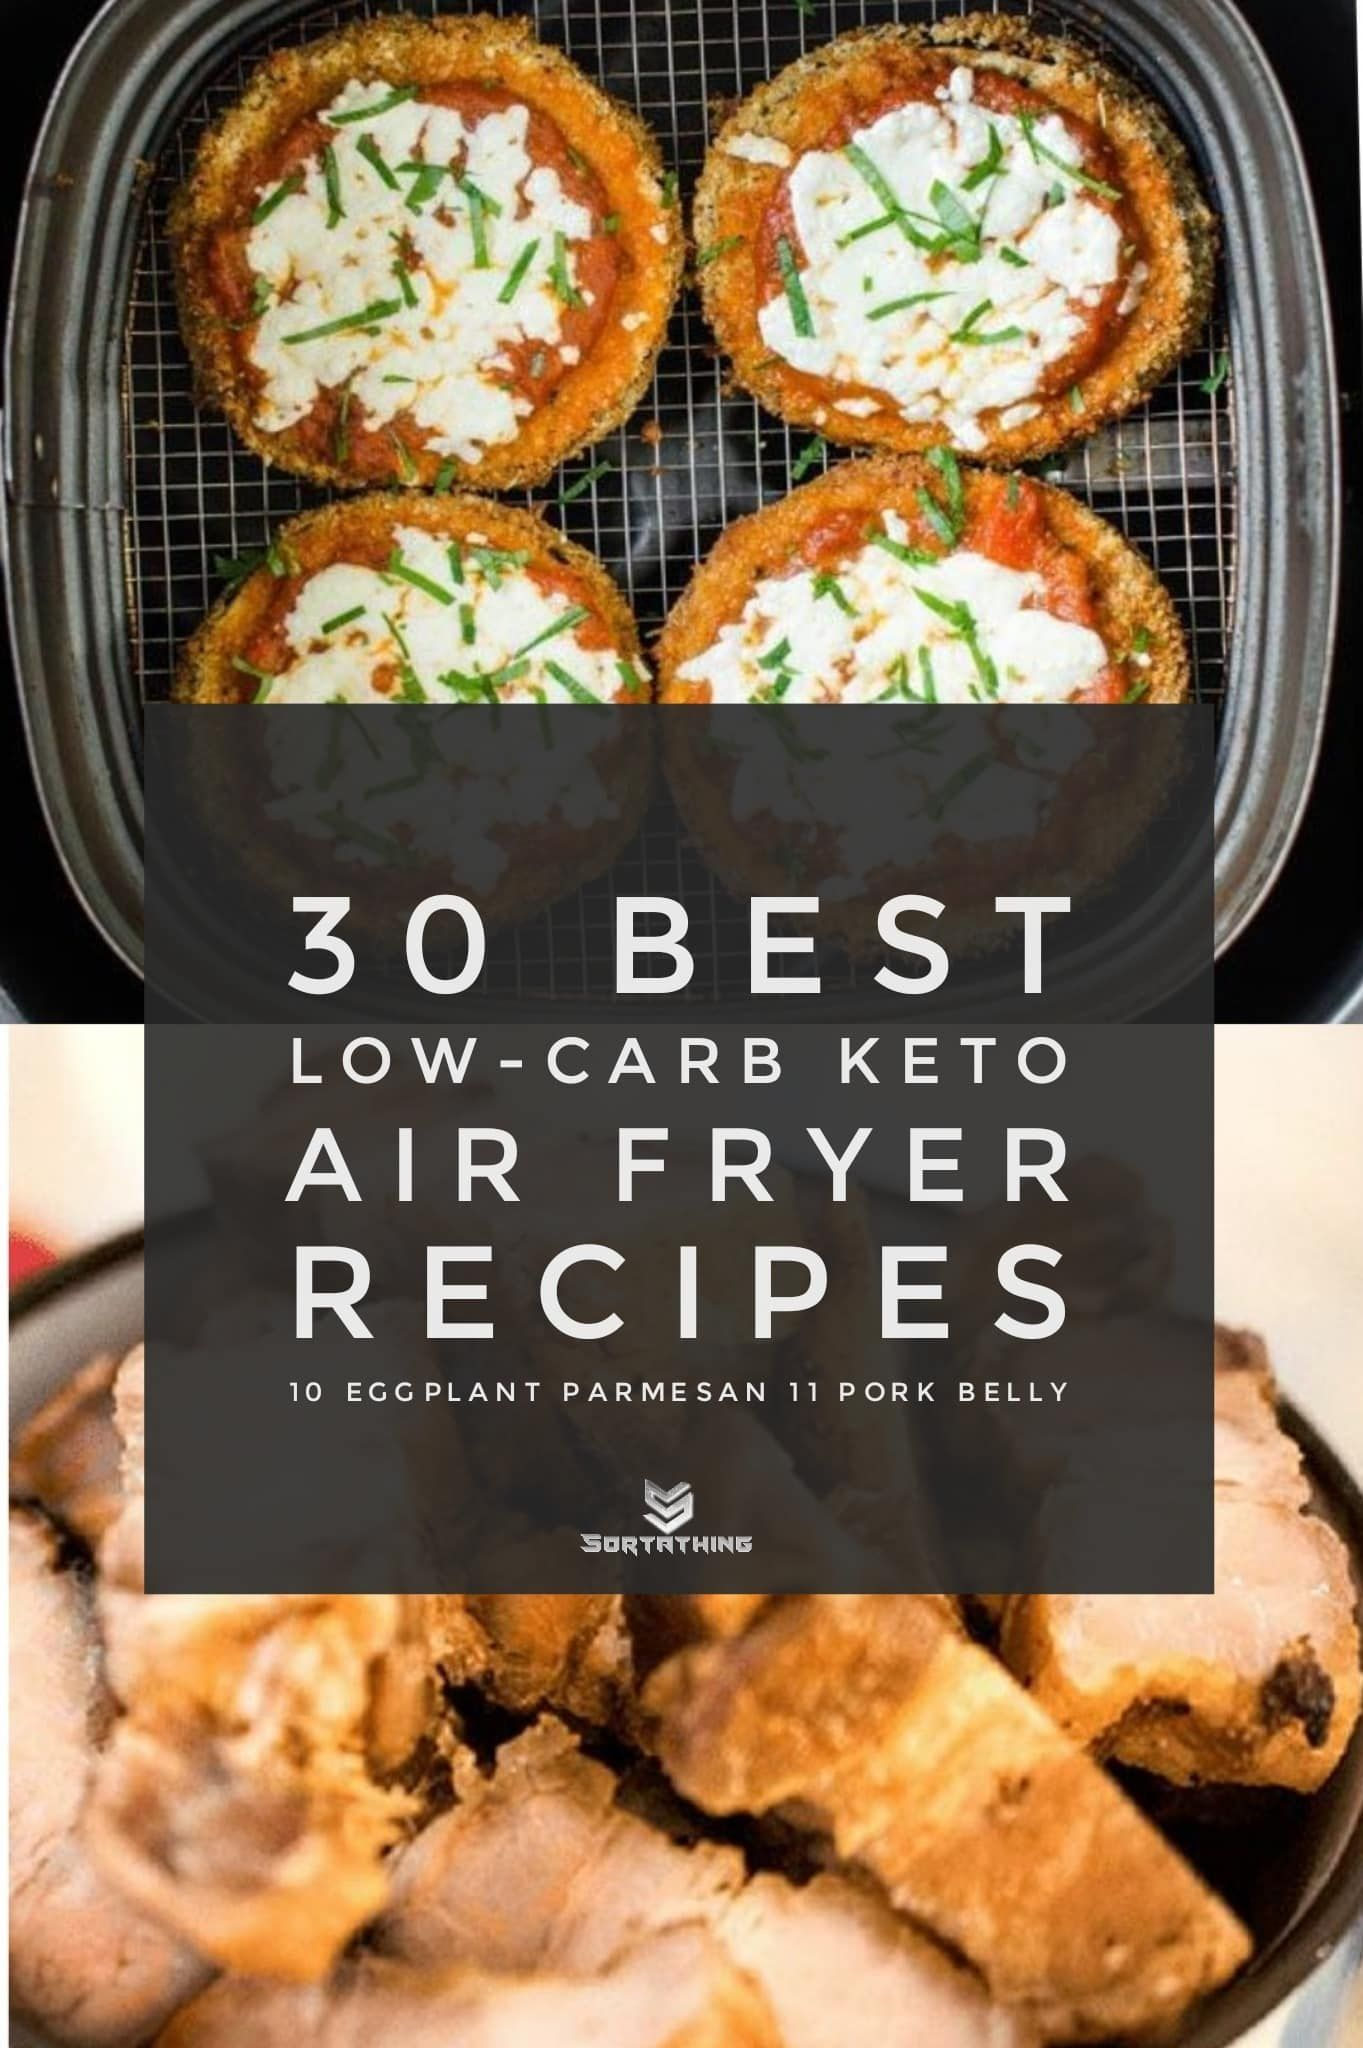 30 Best LowCarb Keto Air Fryer Recipes For 2020